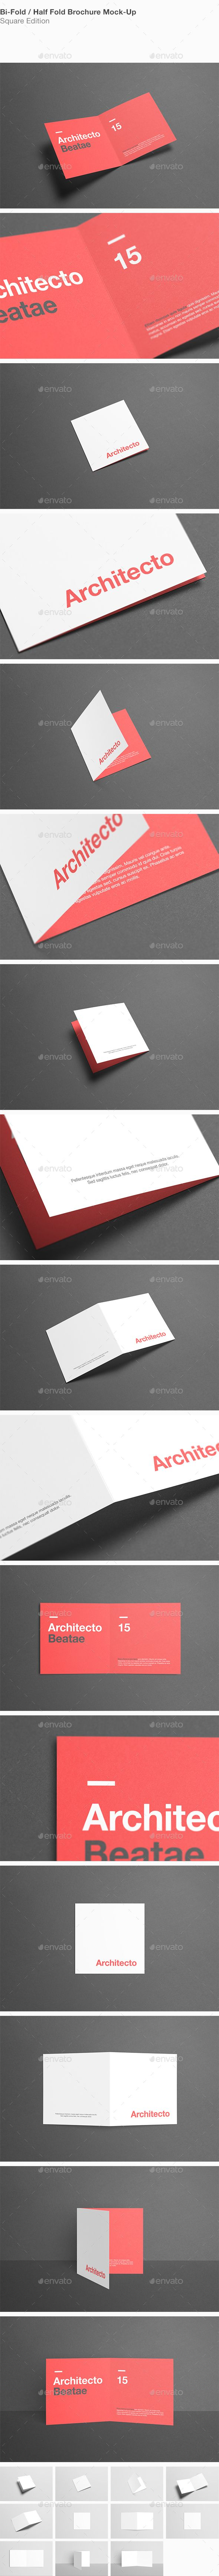 Square BiFold HalfFold Brochure MockUp — shop PSD glossy paper • Available here